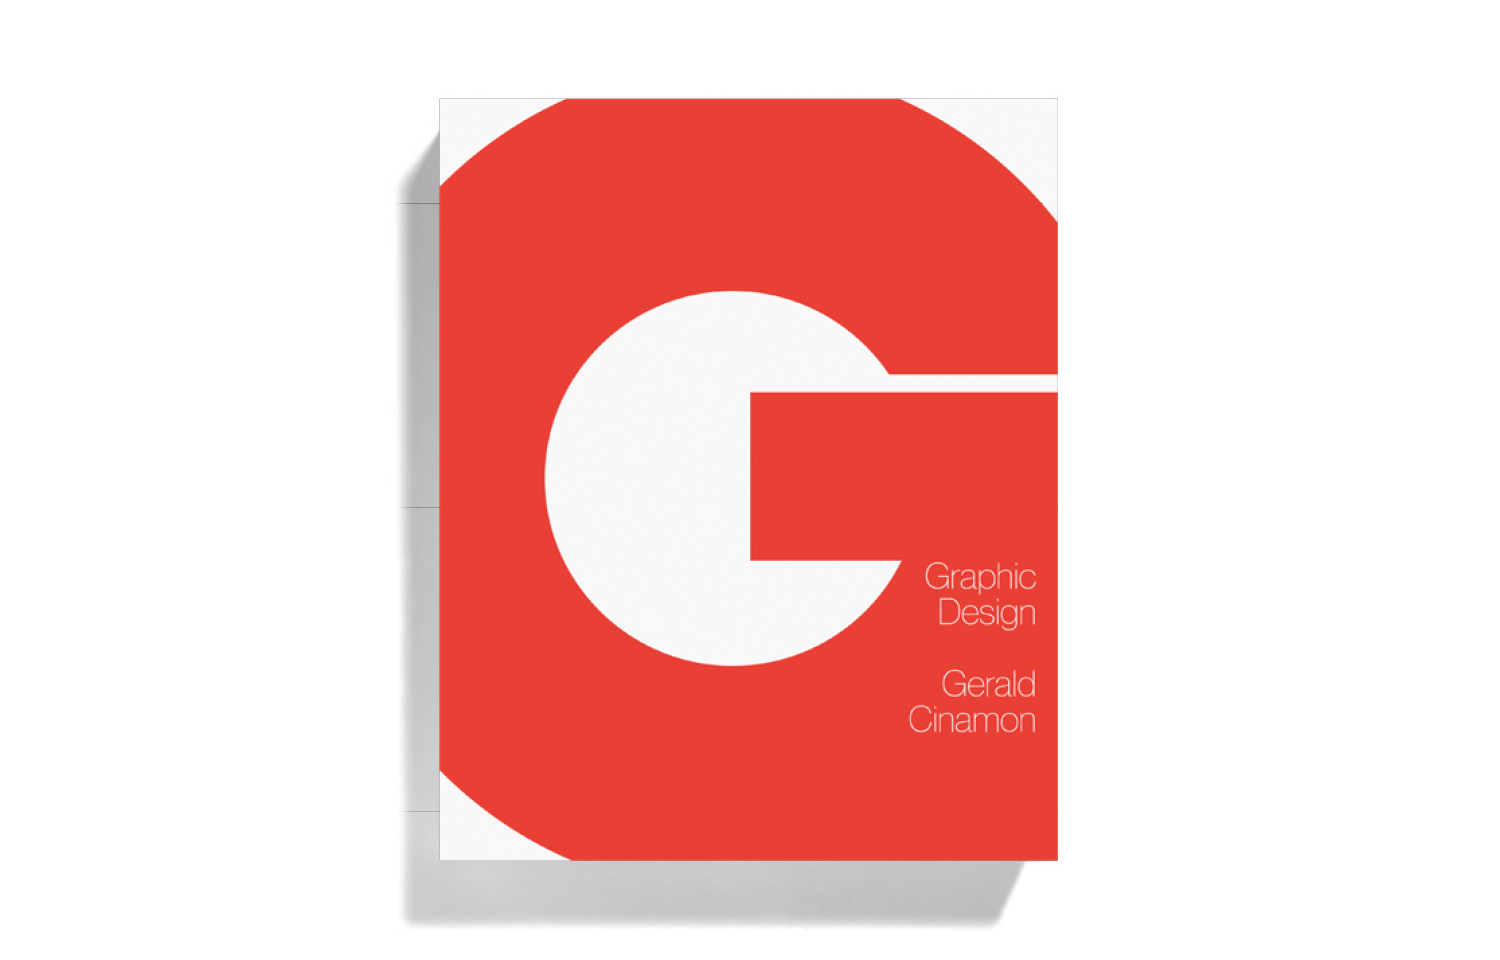 <i>Graphic Design, Gerald Cinamon</i> (Book, 2013)